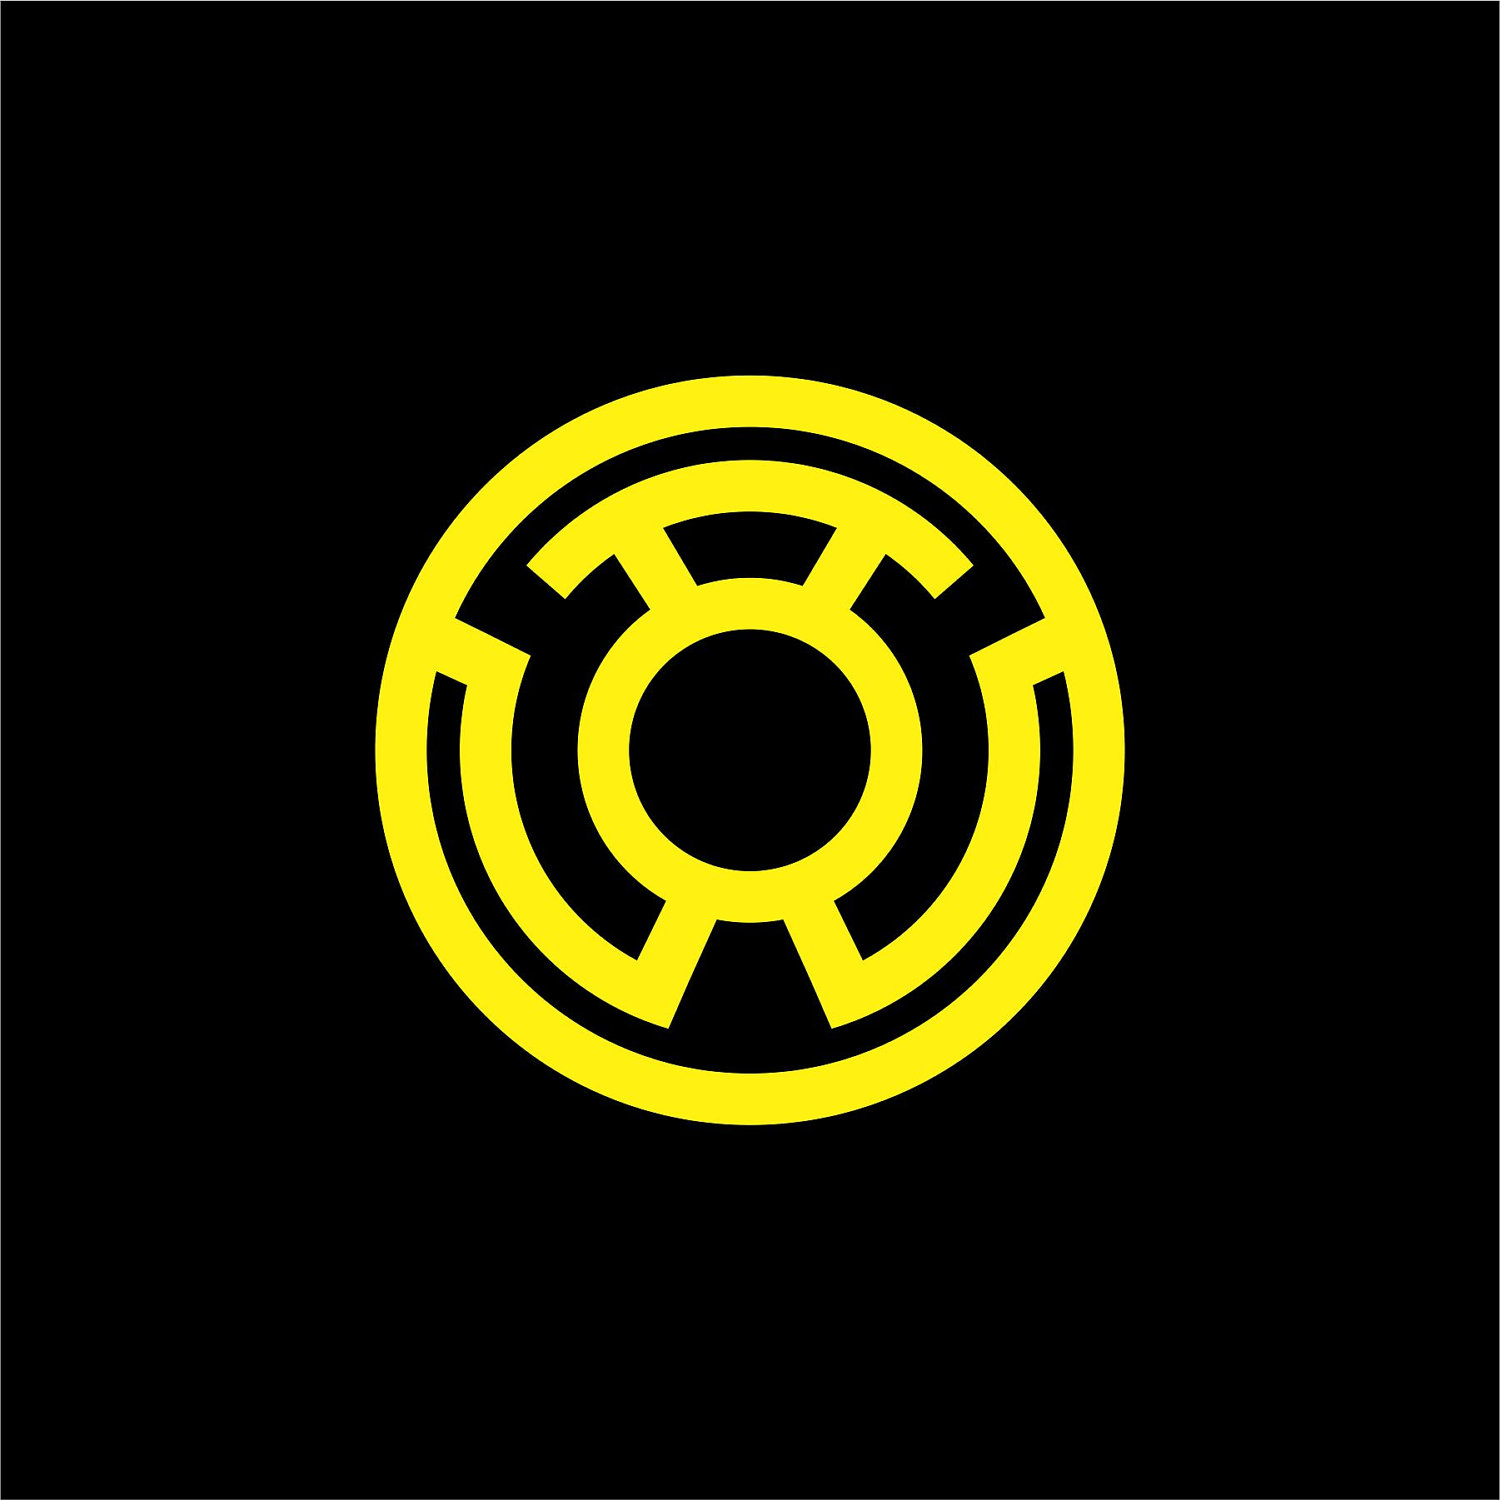 yellow lantern logo - HD 1500×1500